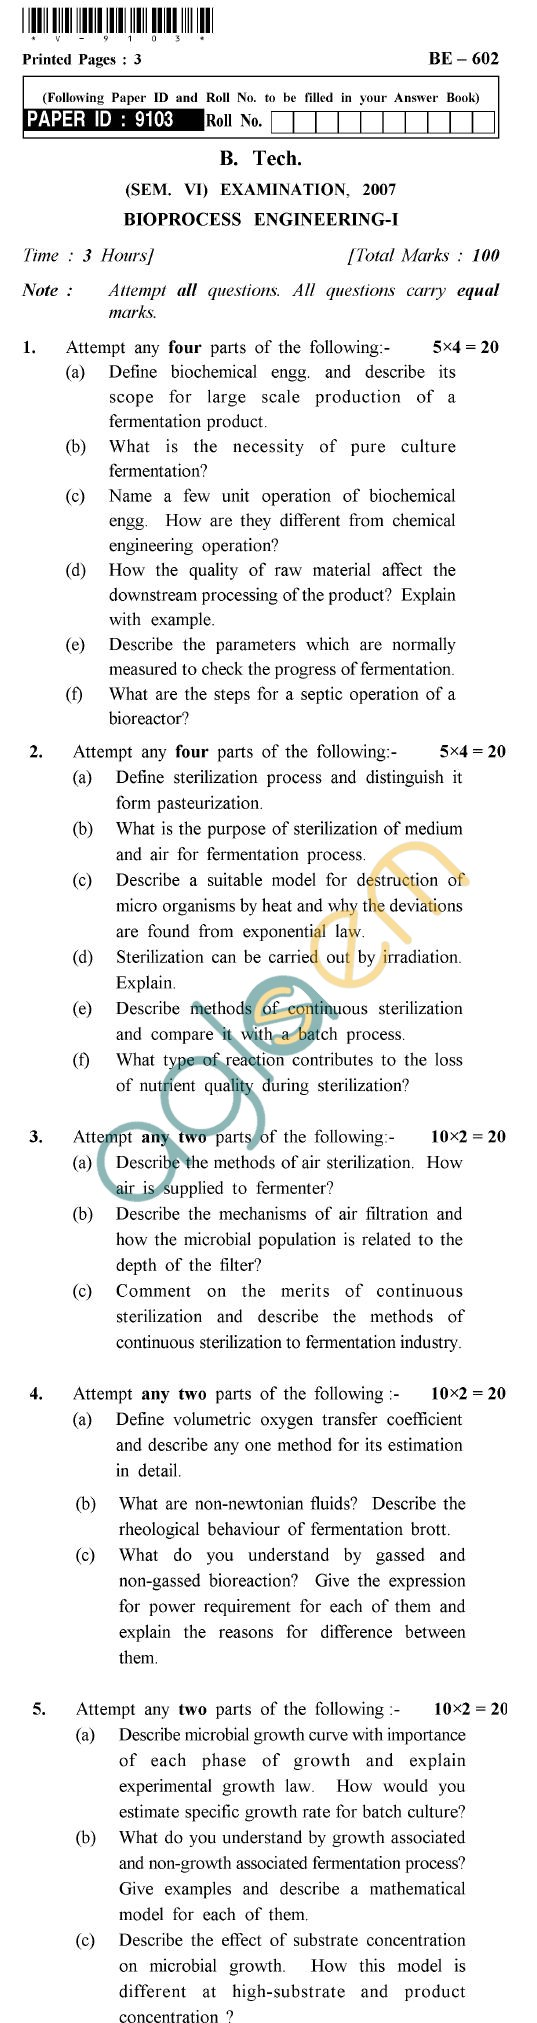 UPTU B.Tech Question Papers -BE-602 - Bioprocess Engineering-I